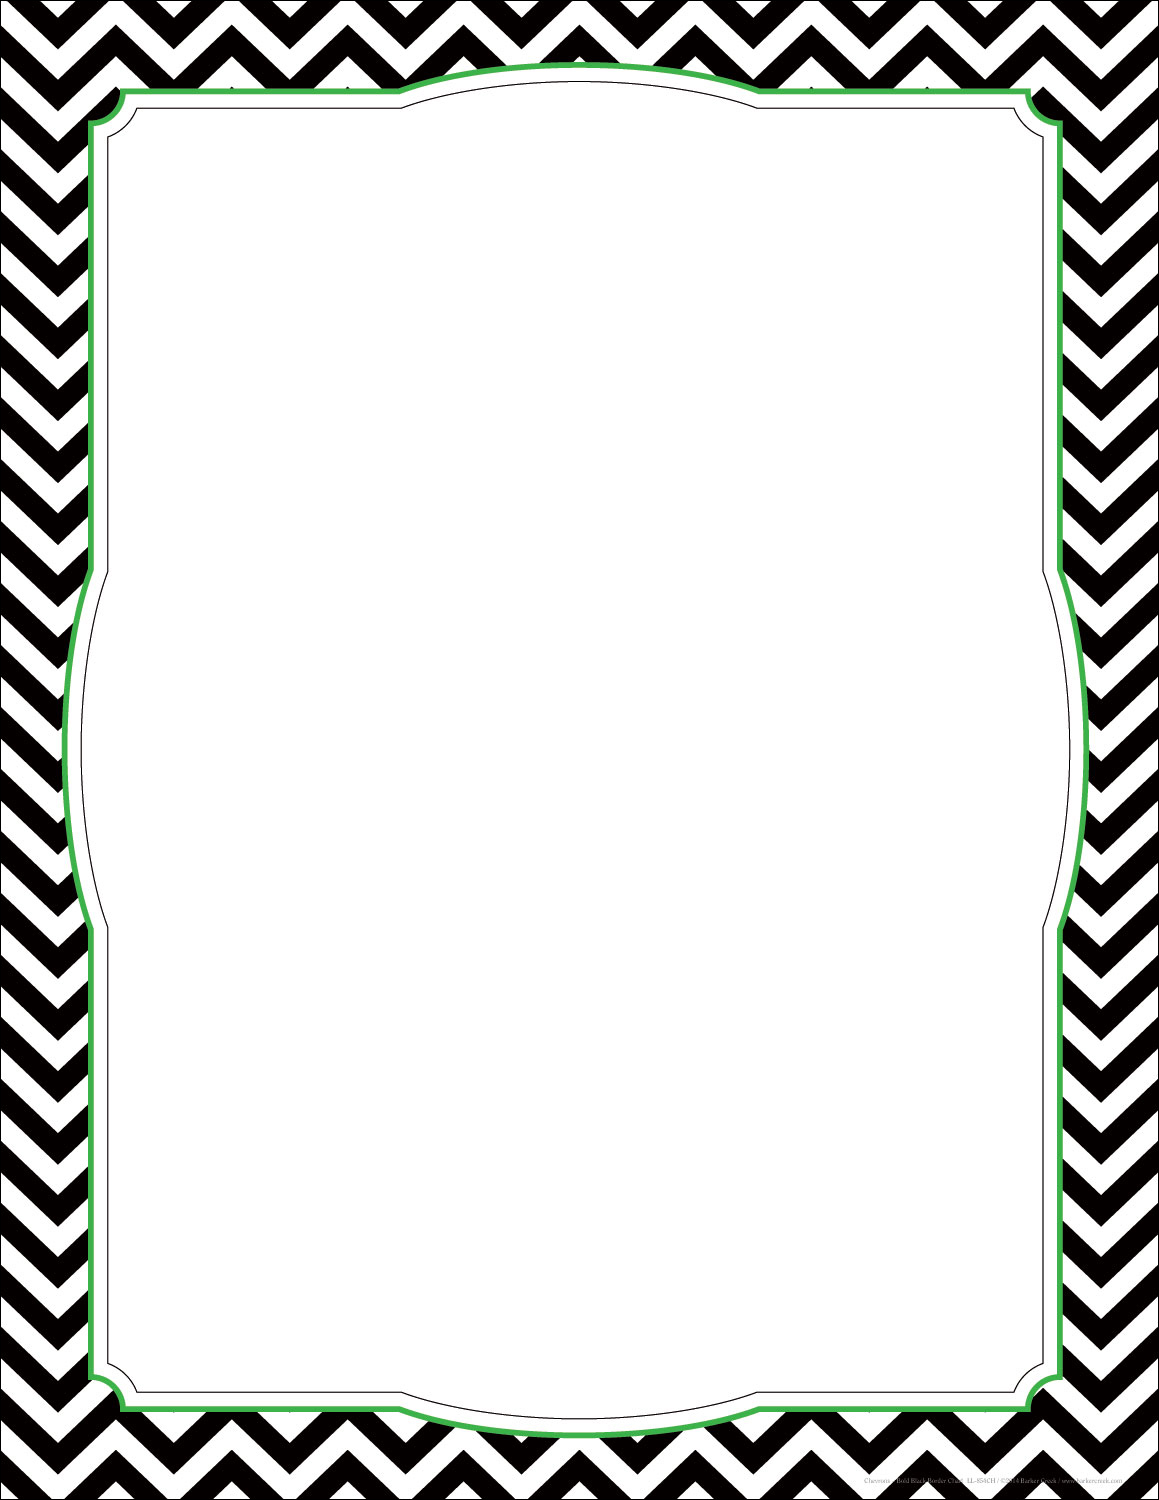 Free Clipart Backgrounds And Borders